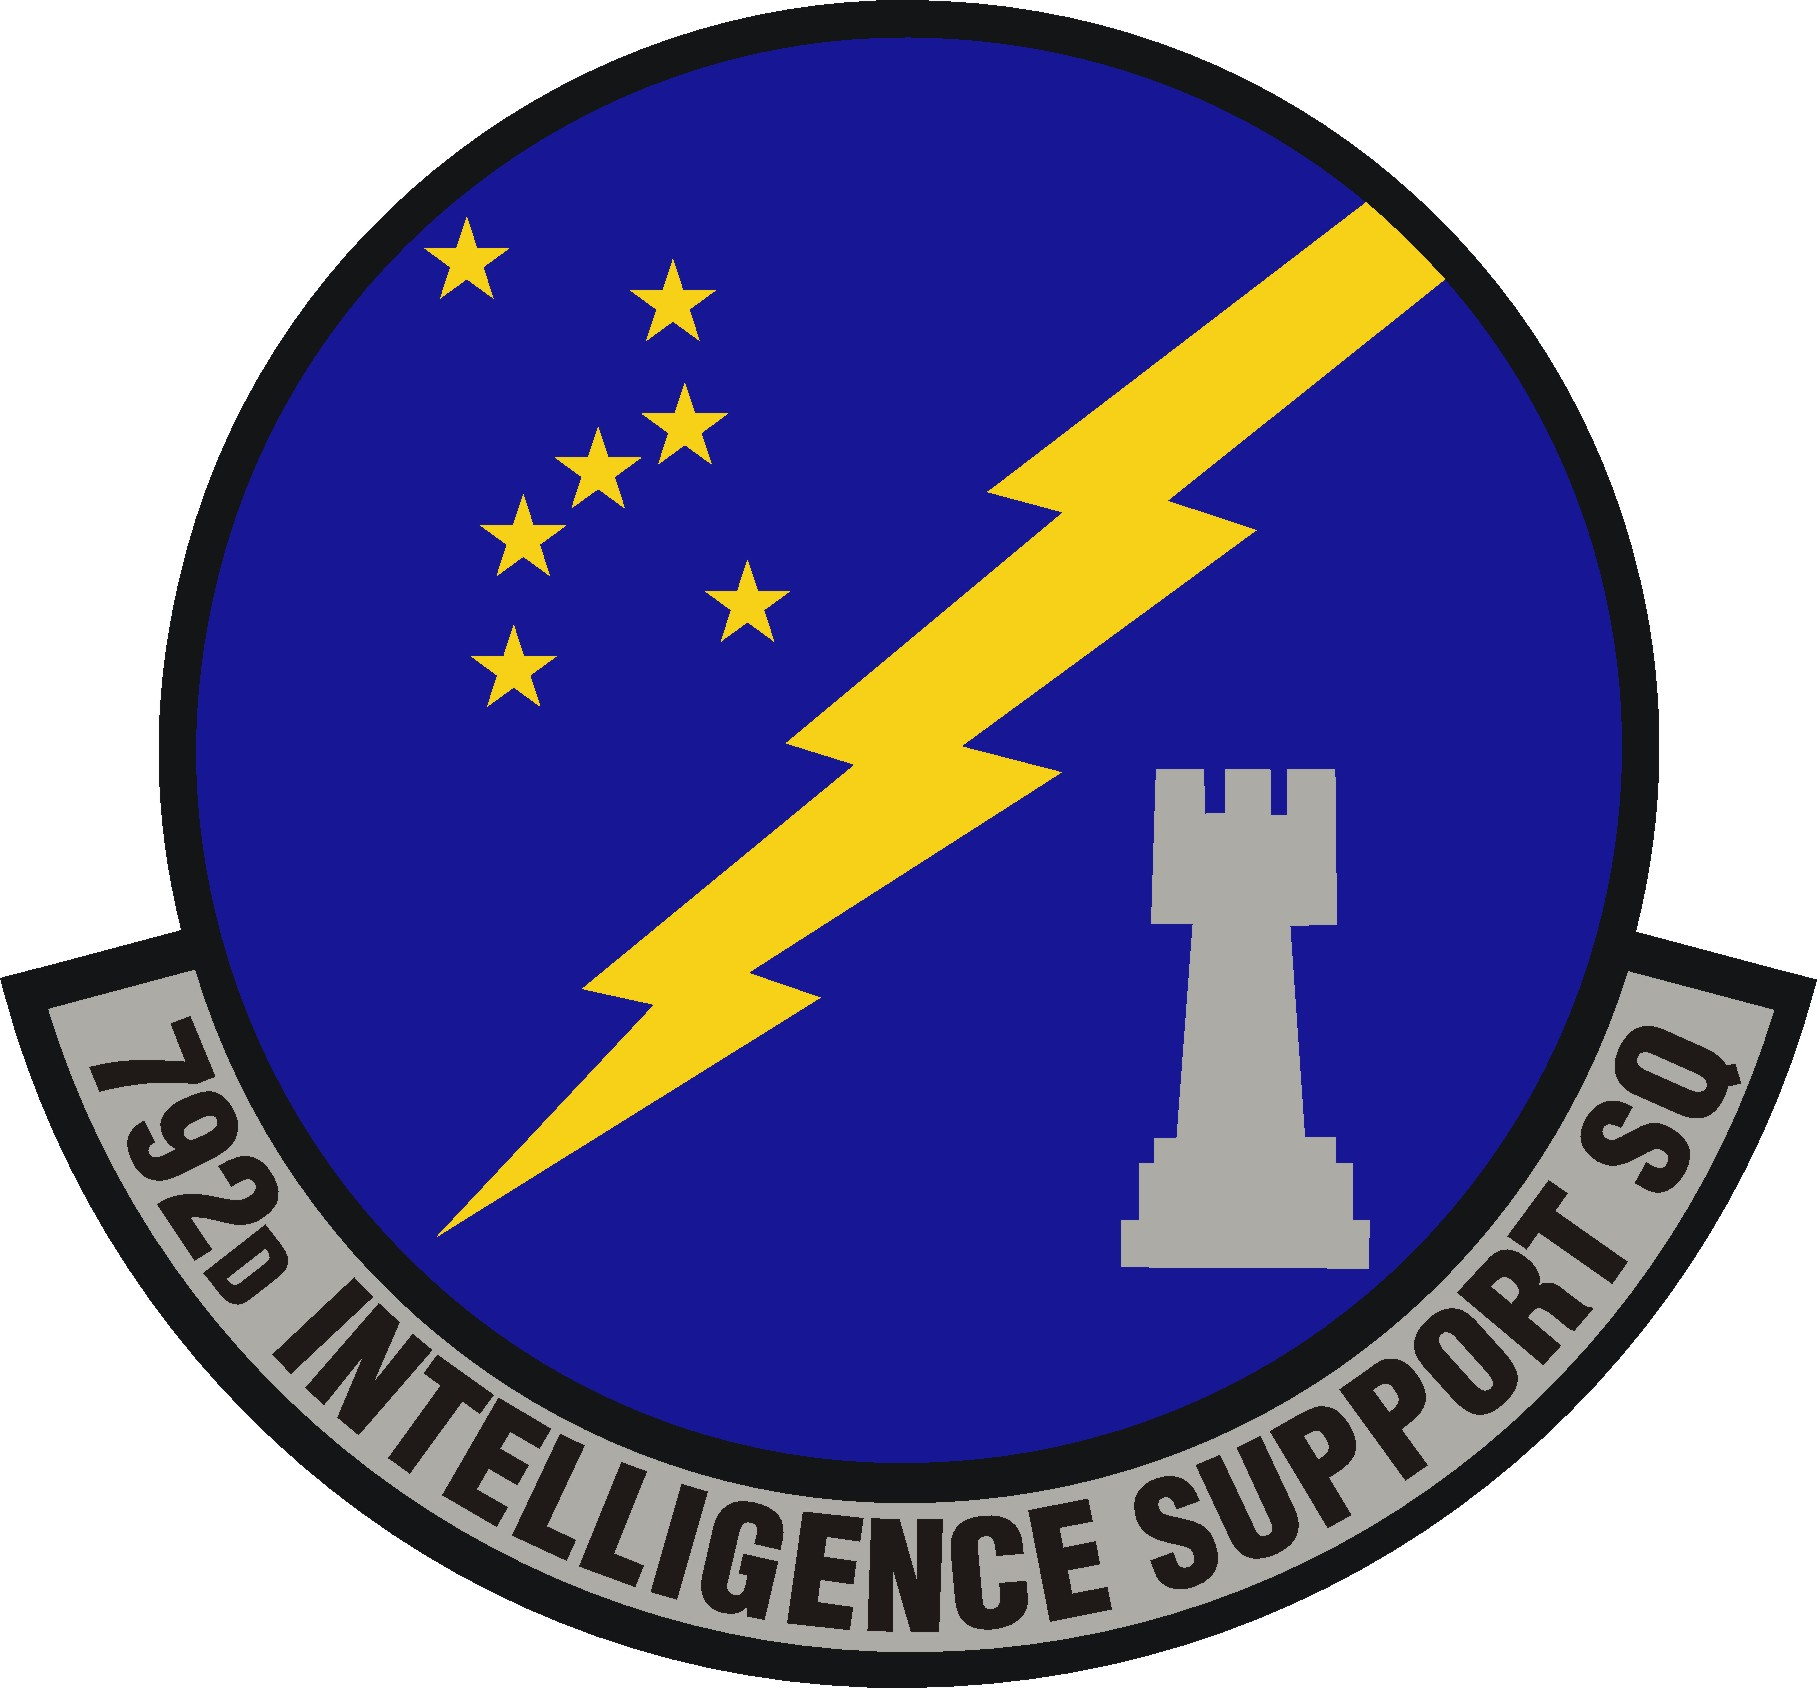 792 Intelligence Support Squadron (AFISRA)